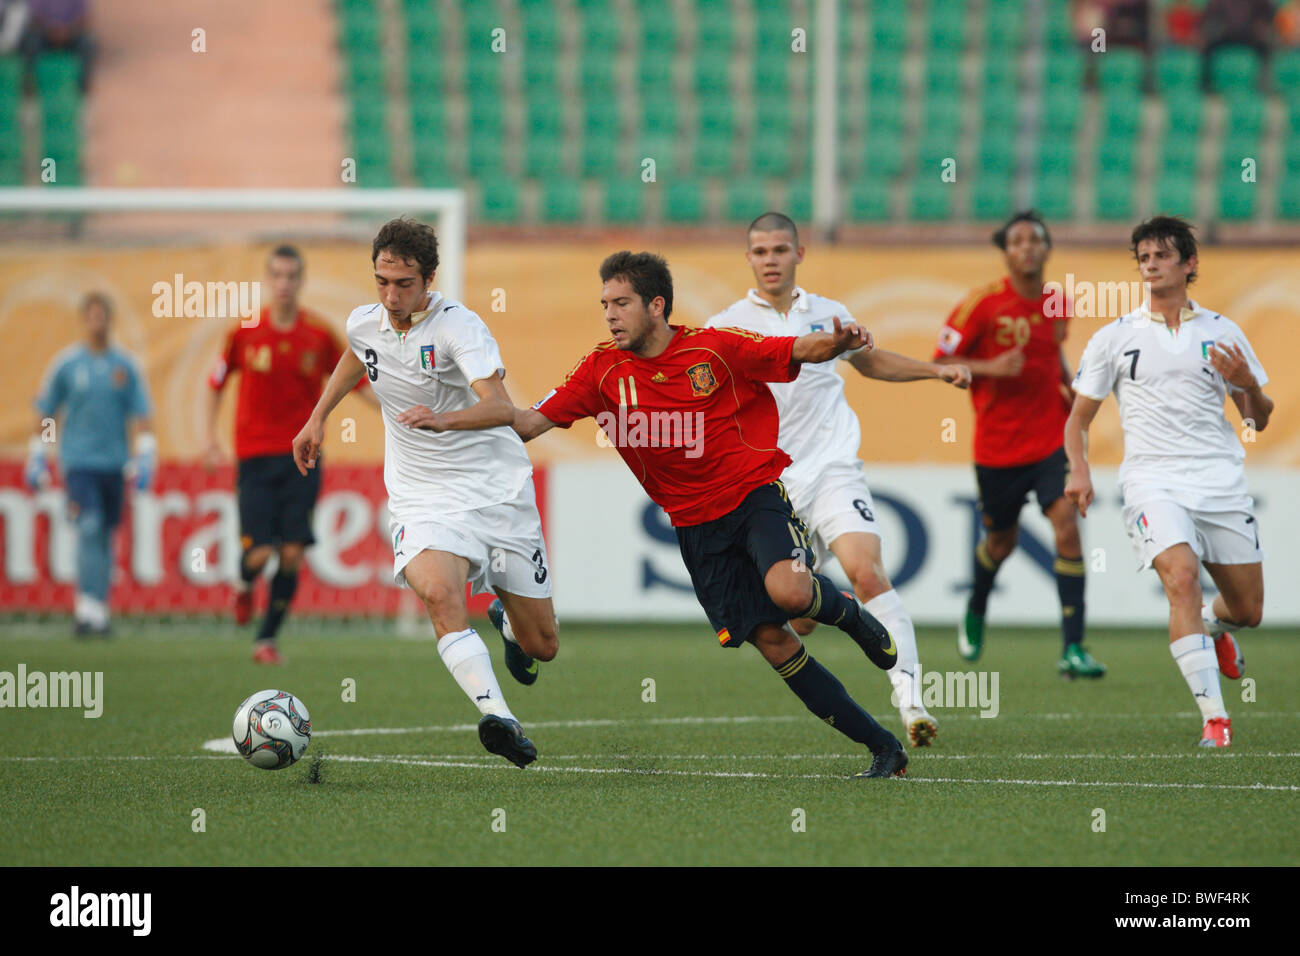 Antonio Mazzotta of Italy (l) controls the ball against Jordi Alba of Spain (r) during a 2009 FIFA U-20 World Cup - Stock Image